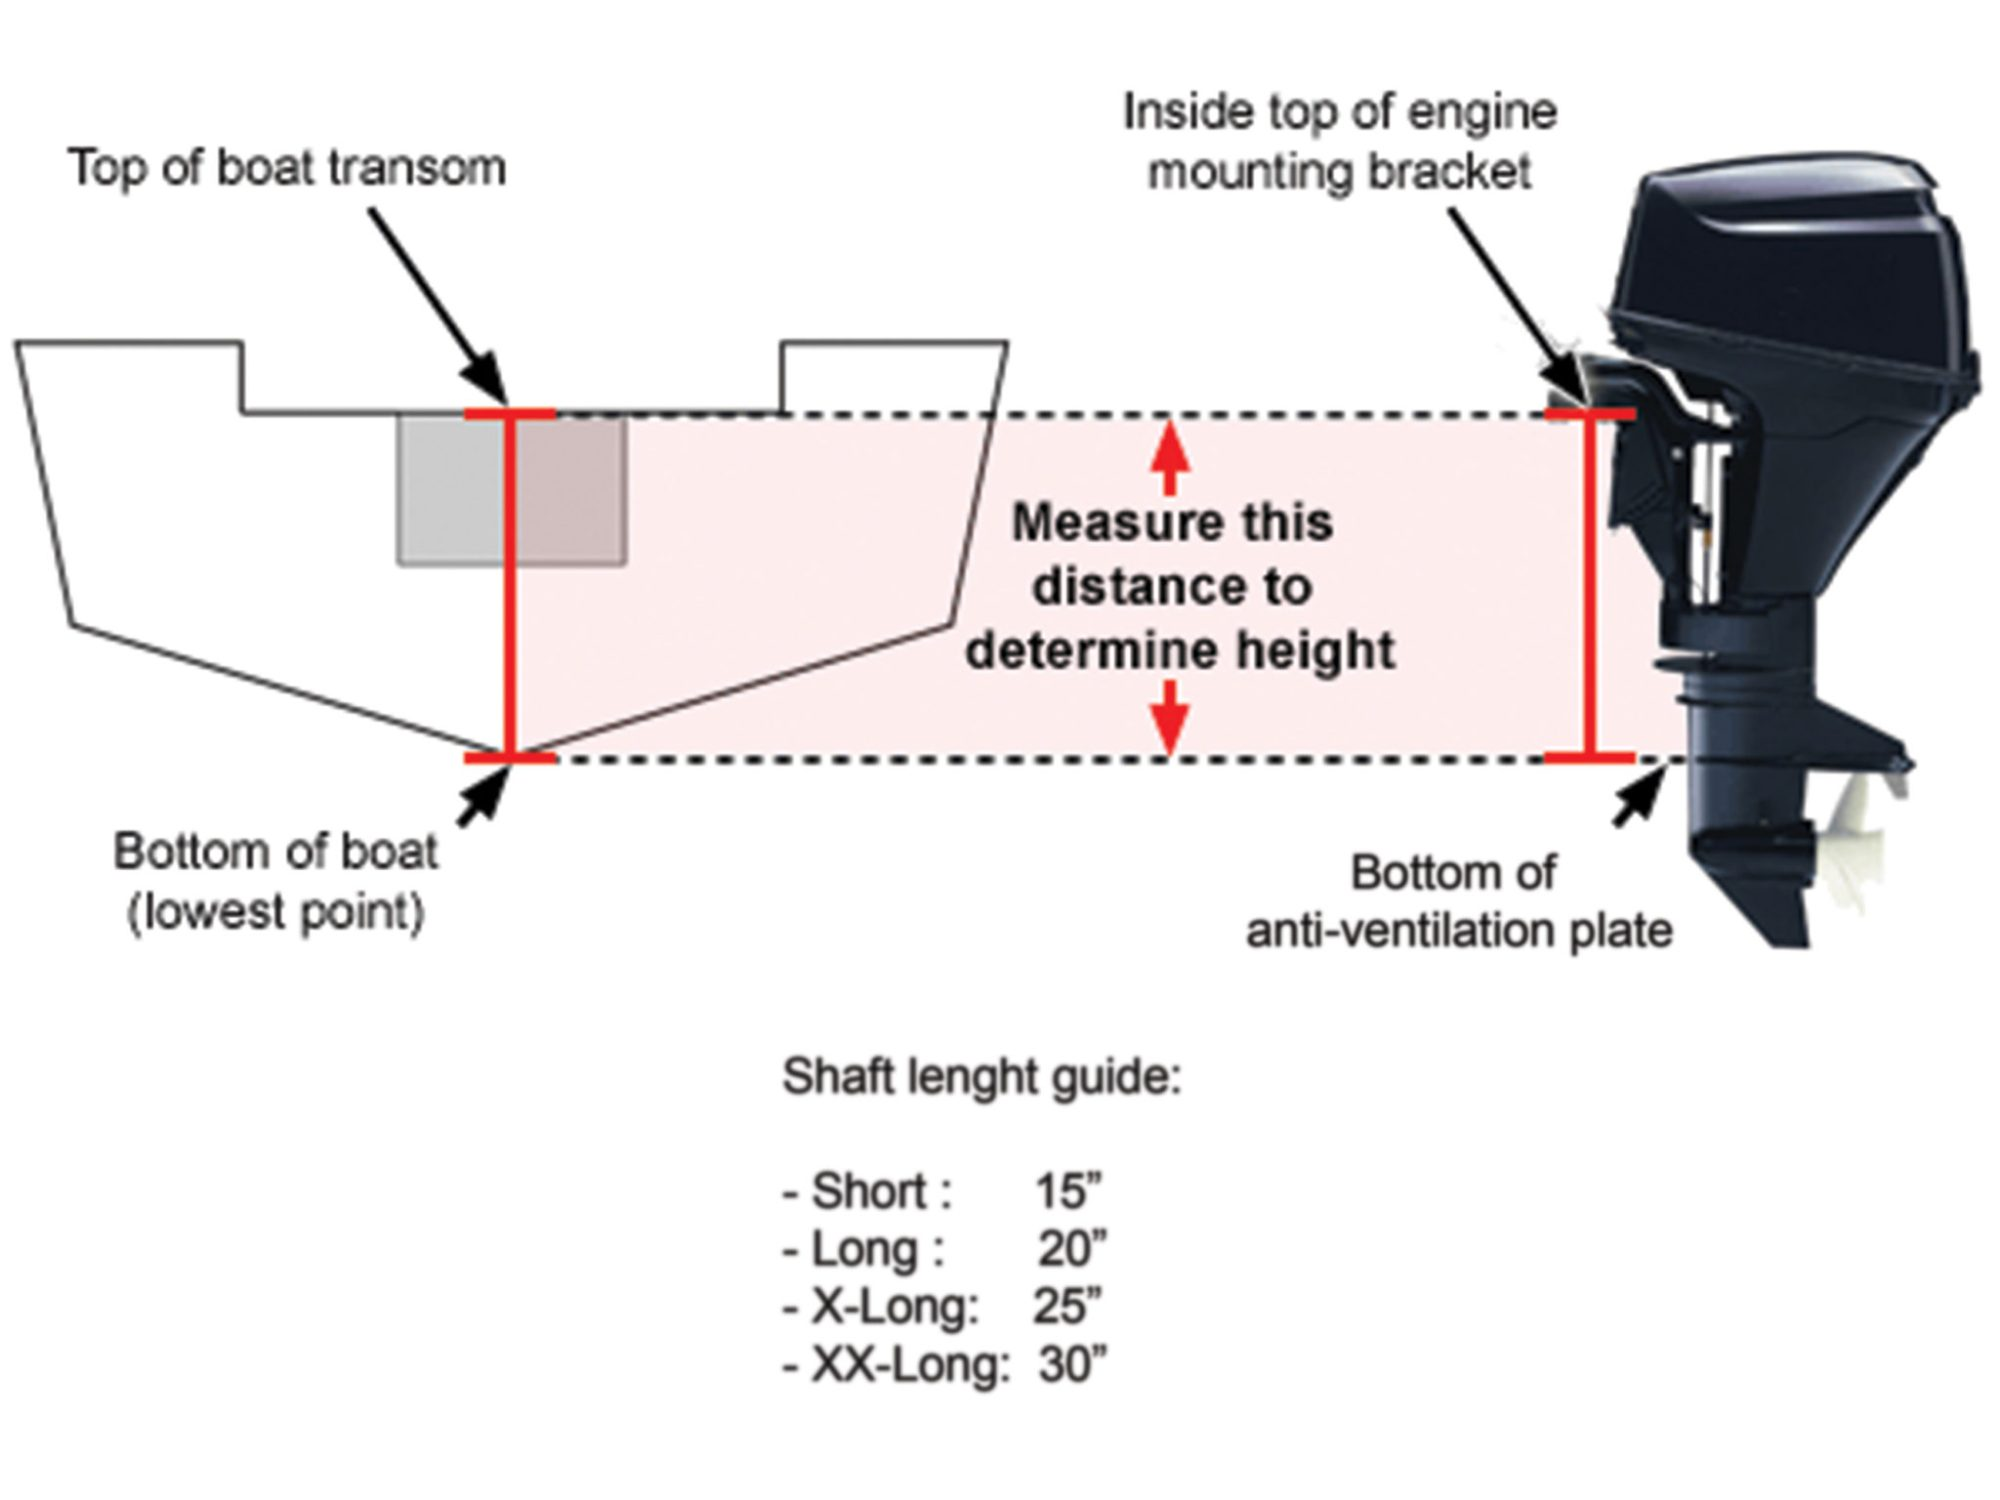 hight resolution of boat transom measurements